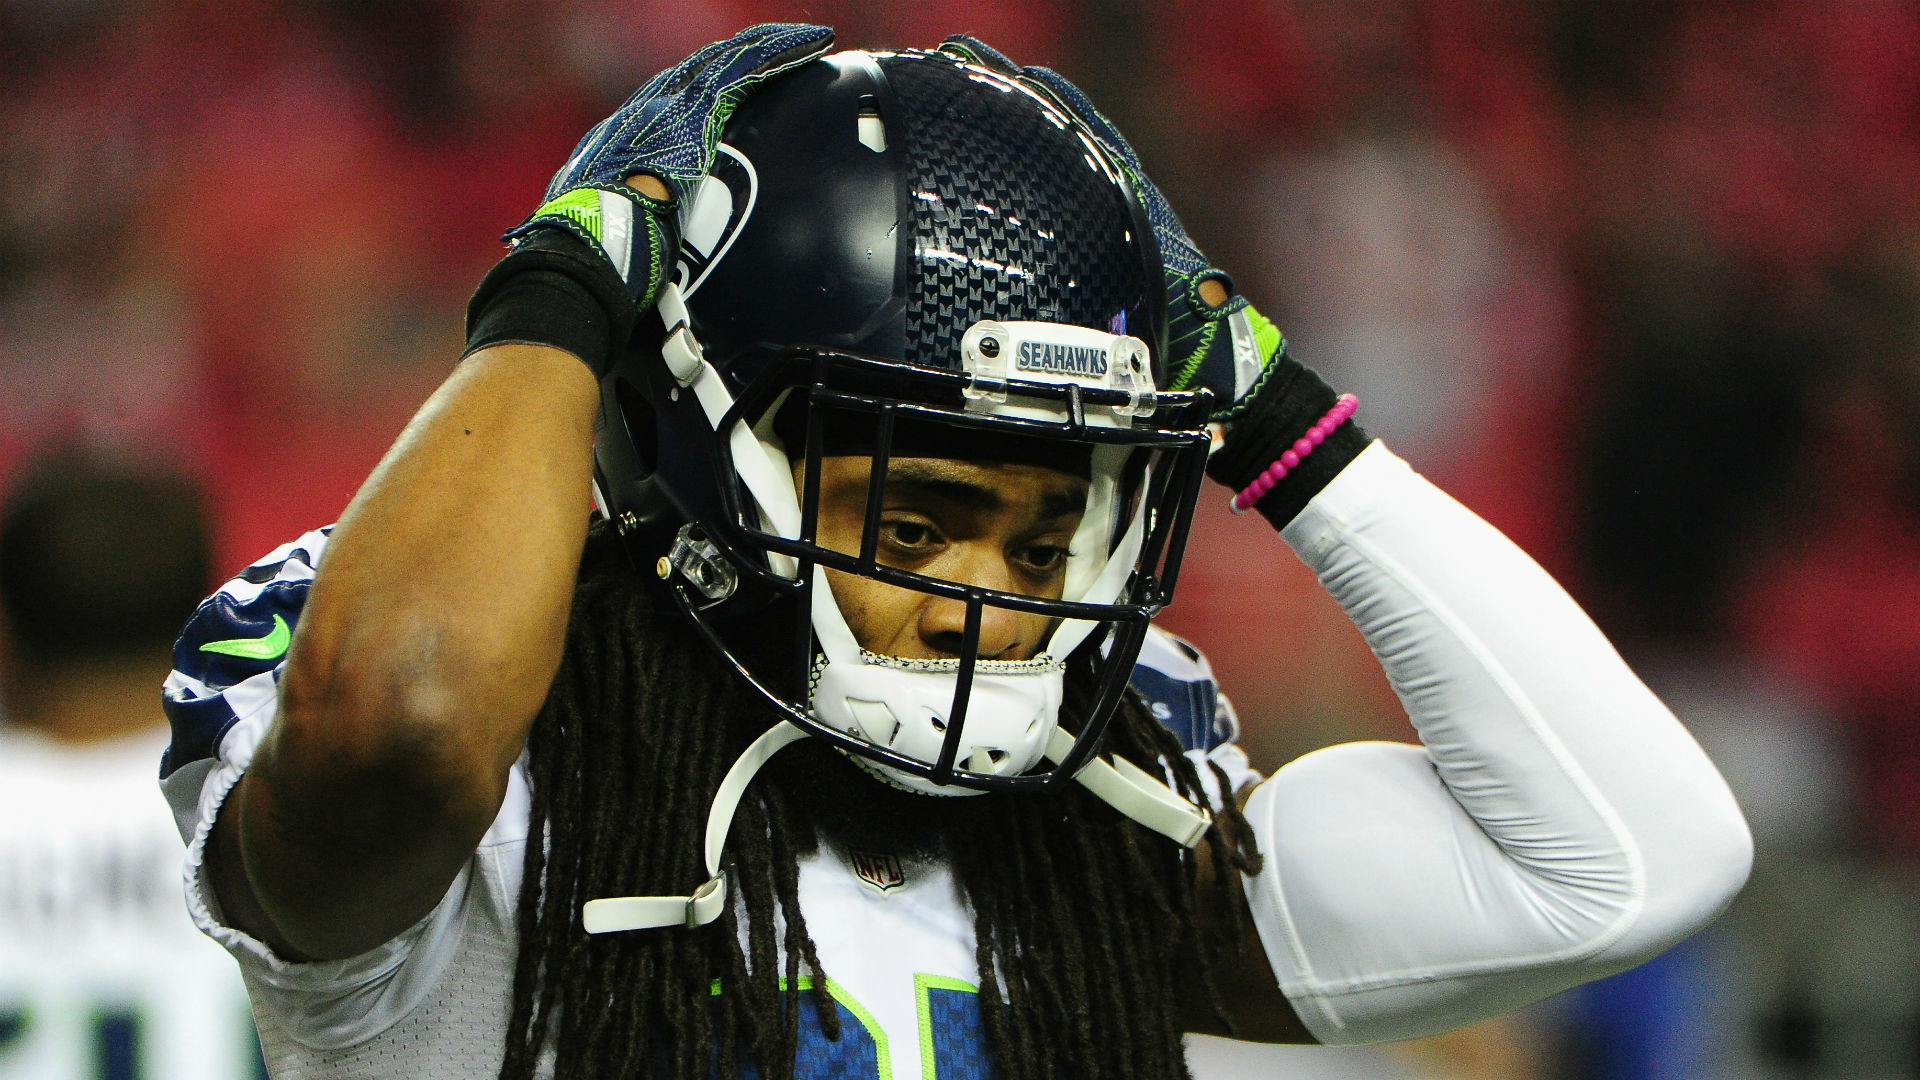 Richard-sherman-11717-usnews-getty-ftr_1xsntorcib8dh1wnmskiwap9nz